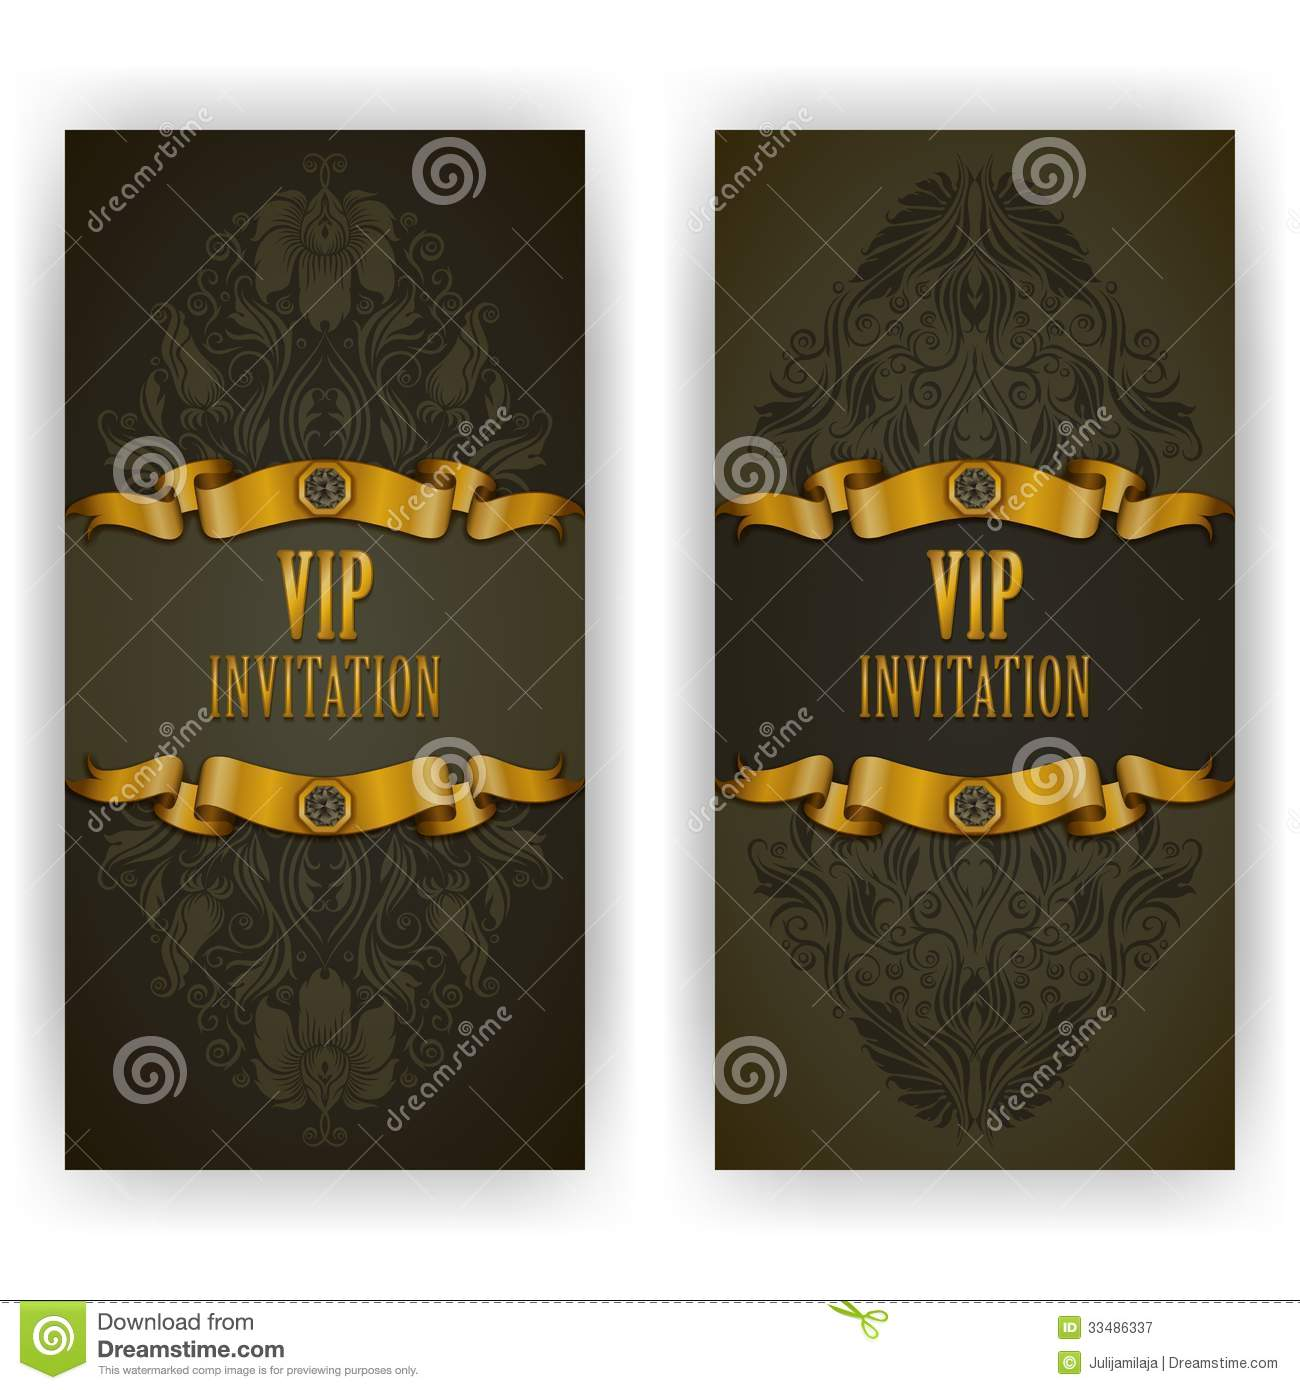 Elegant Template For Vip Luxury Invitation Royalty Free